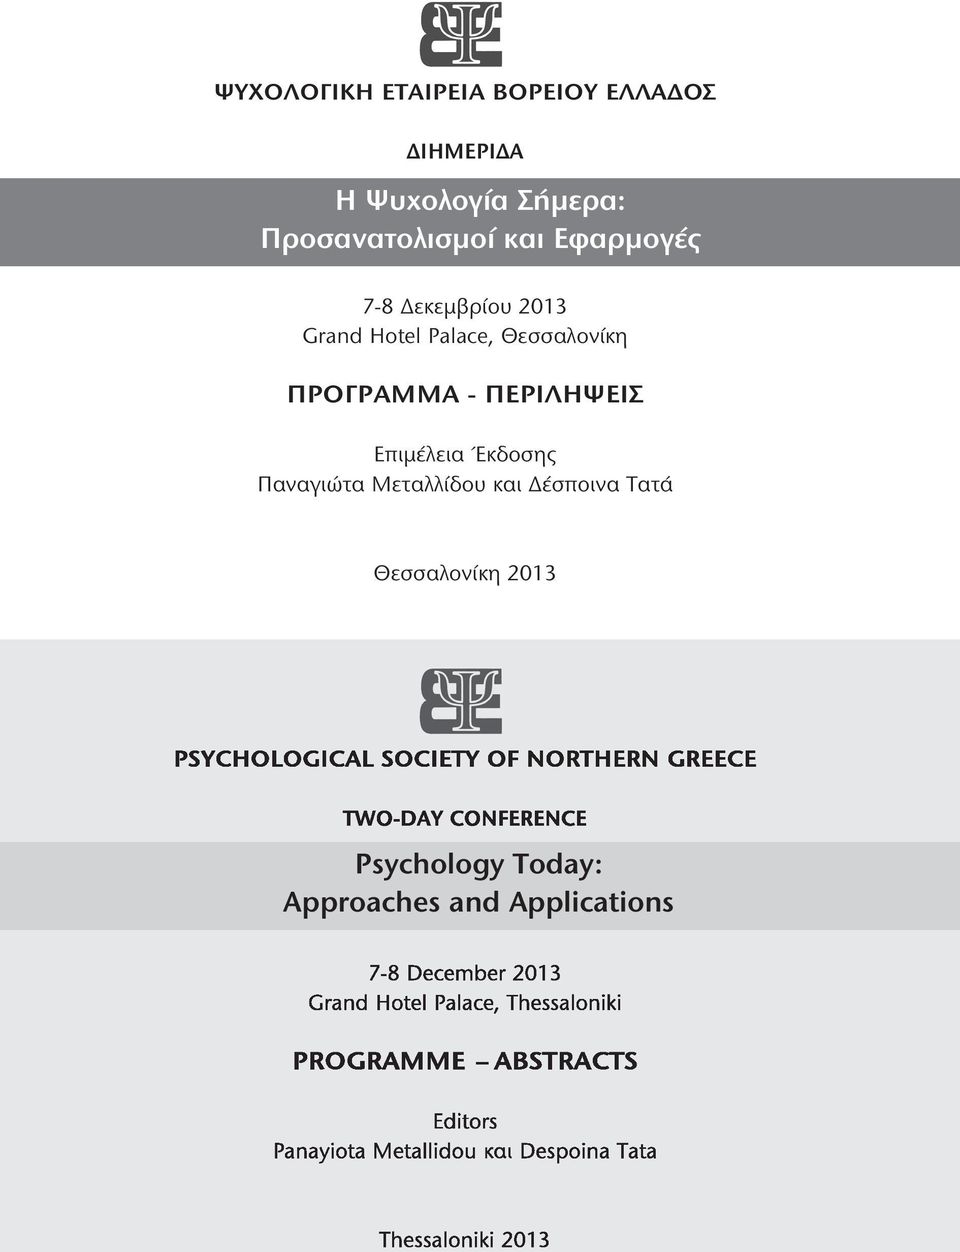 2013 PSYCHOLOGICAL SOCIETY OF NORTHERN GREECE TWO-DAY CONFERENCE Psychology Today: Approaches and Applications 7-8